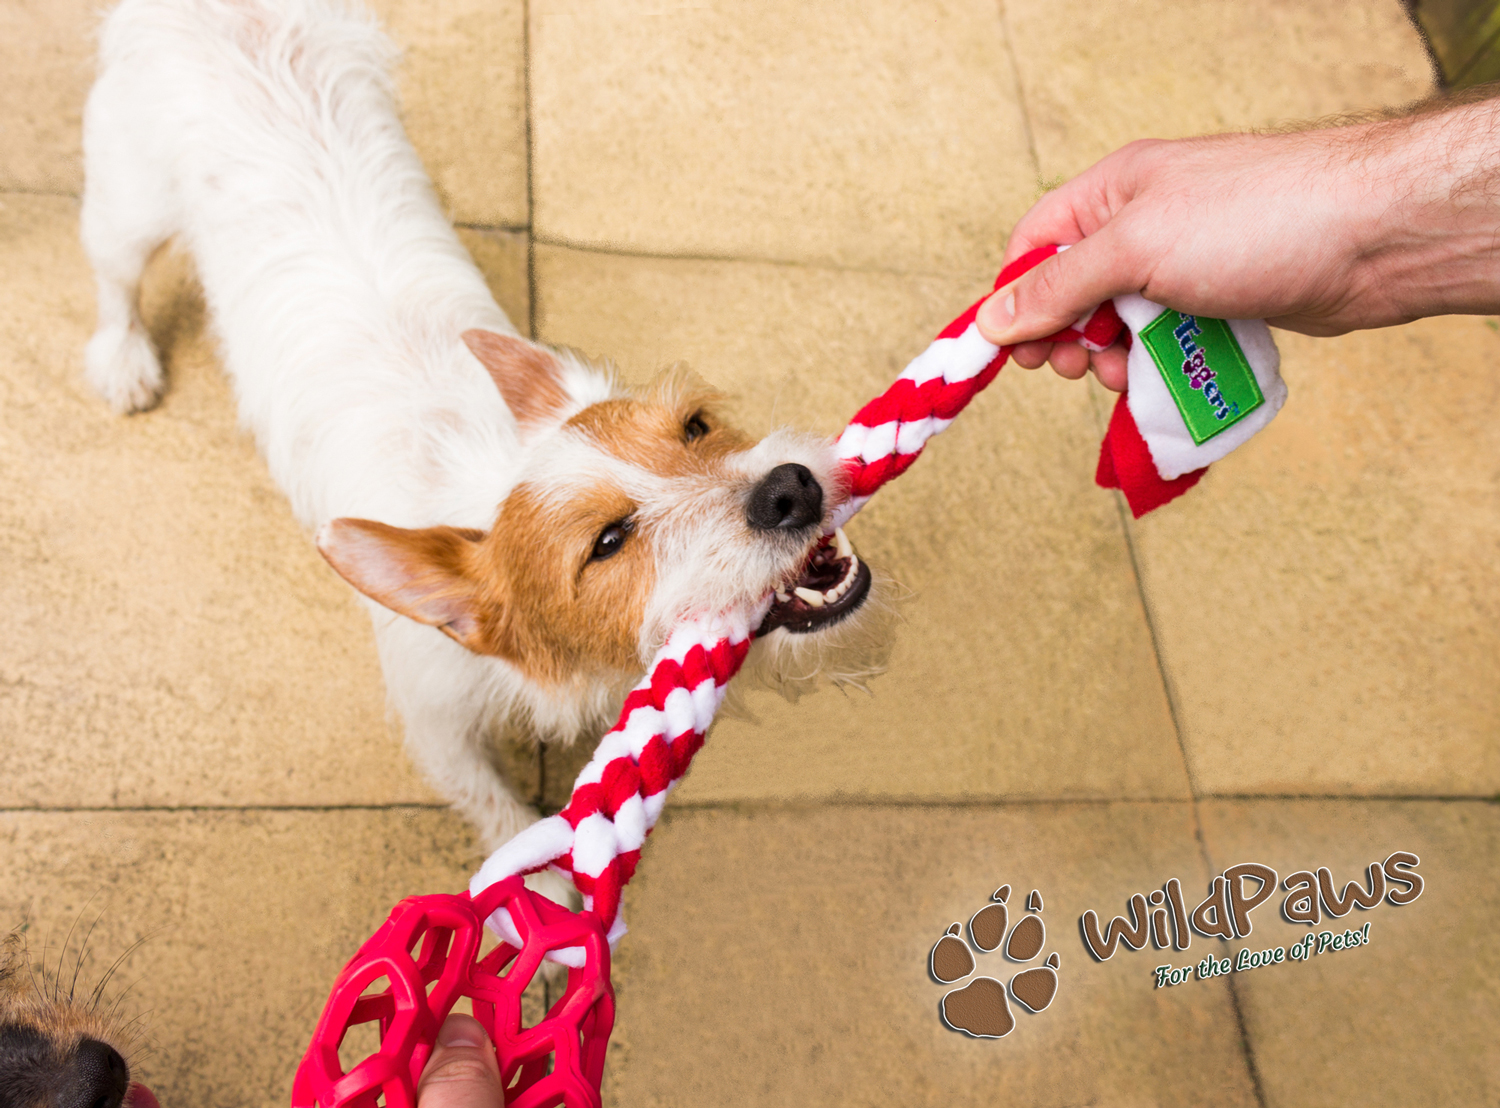 Wilbur Trying the Tug Toy by Ruffle Snuffle for WildPaws Online Pet Shop Blog